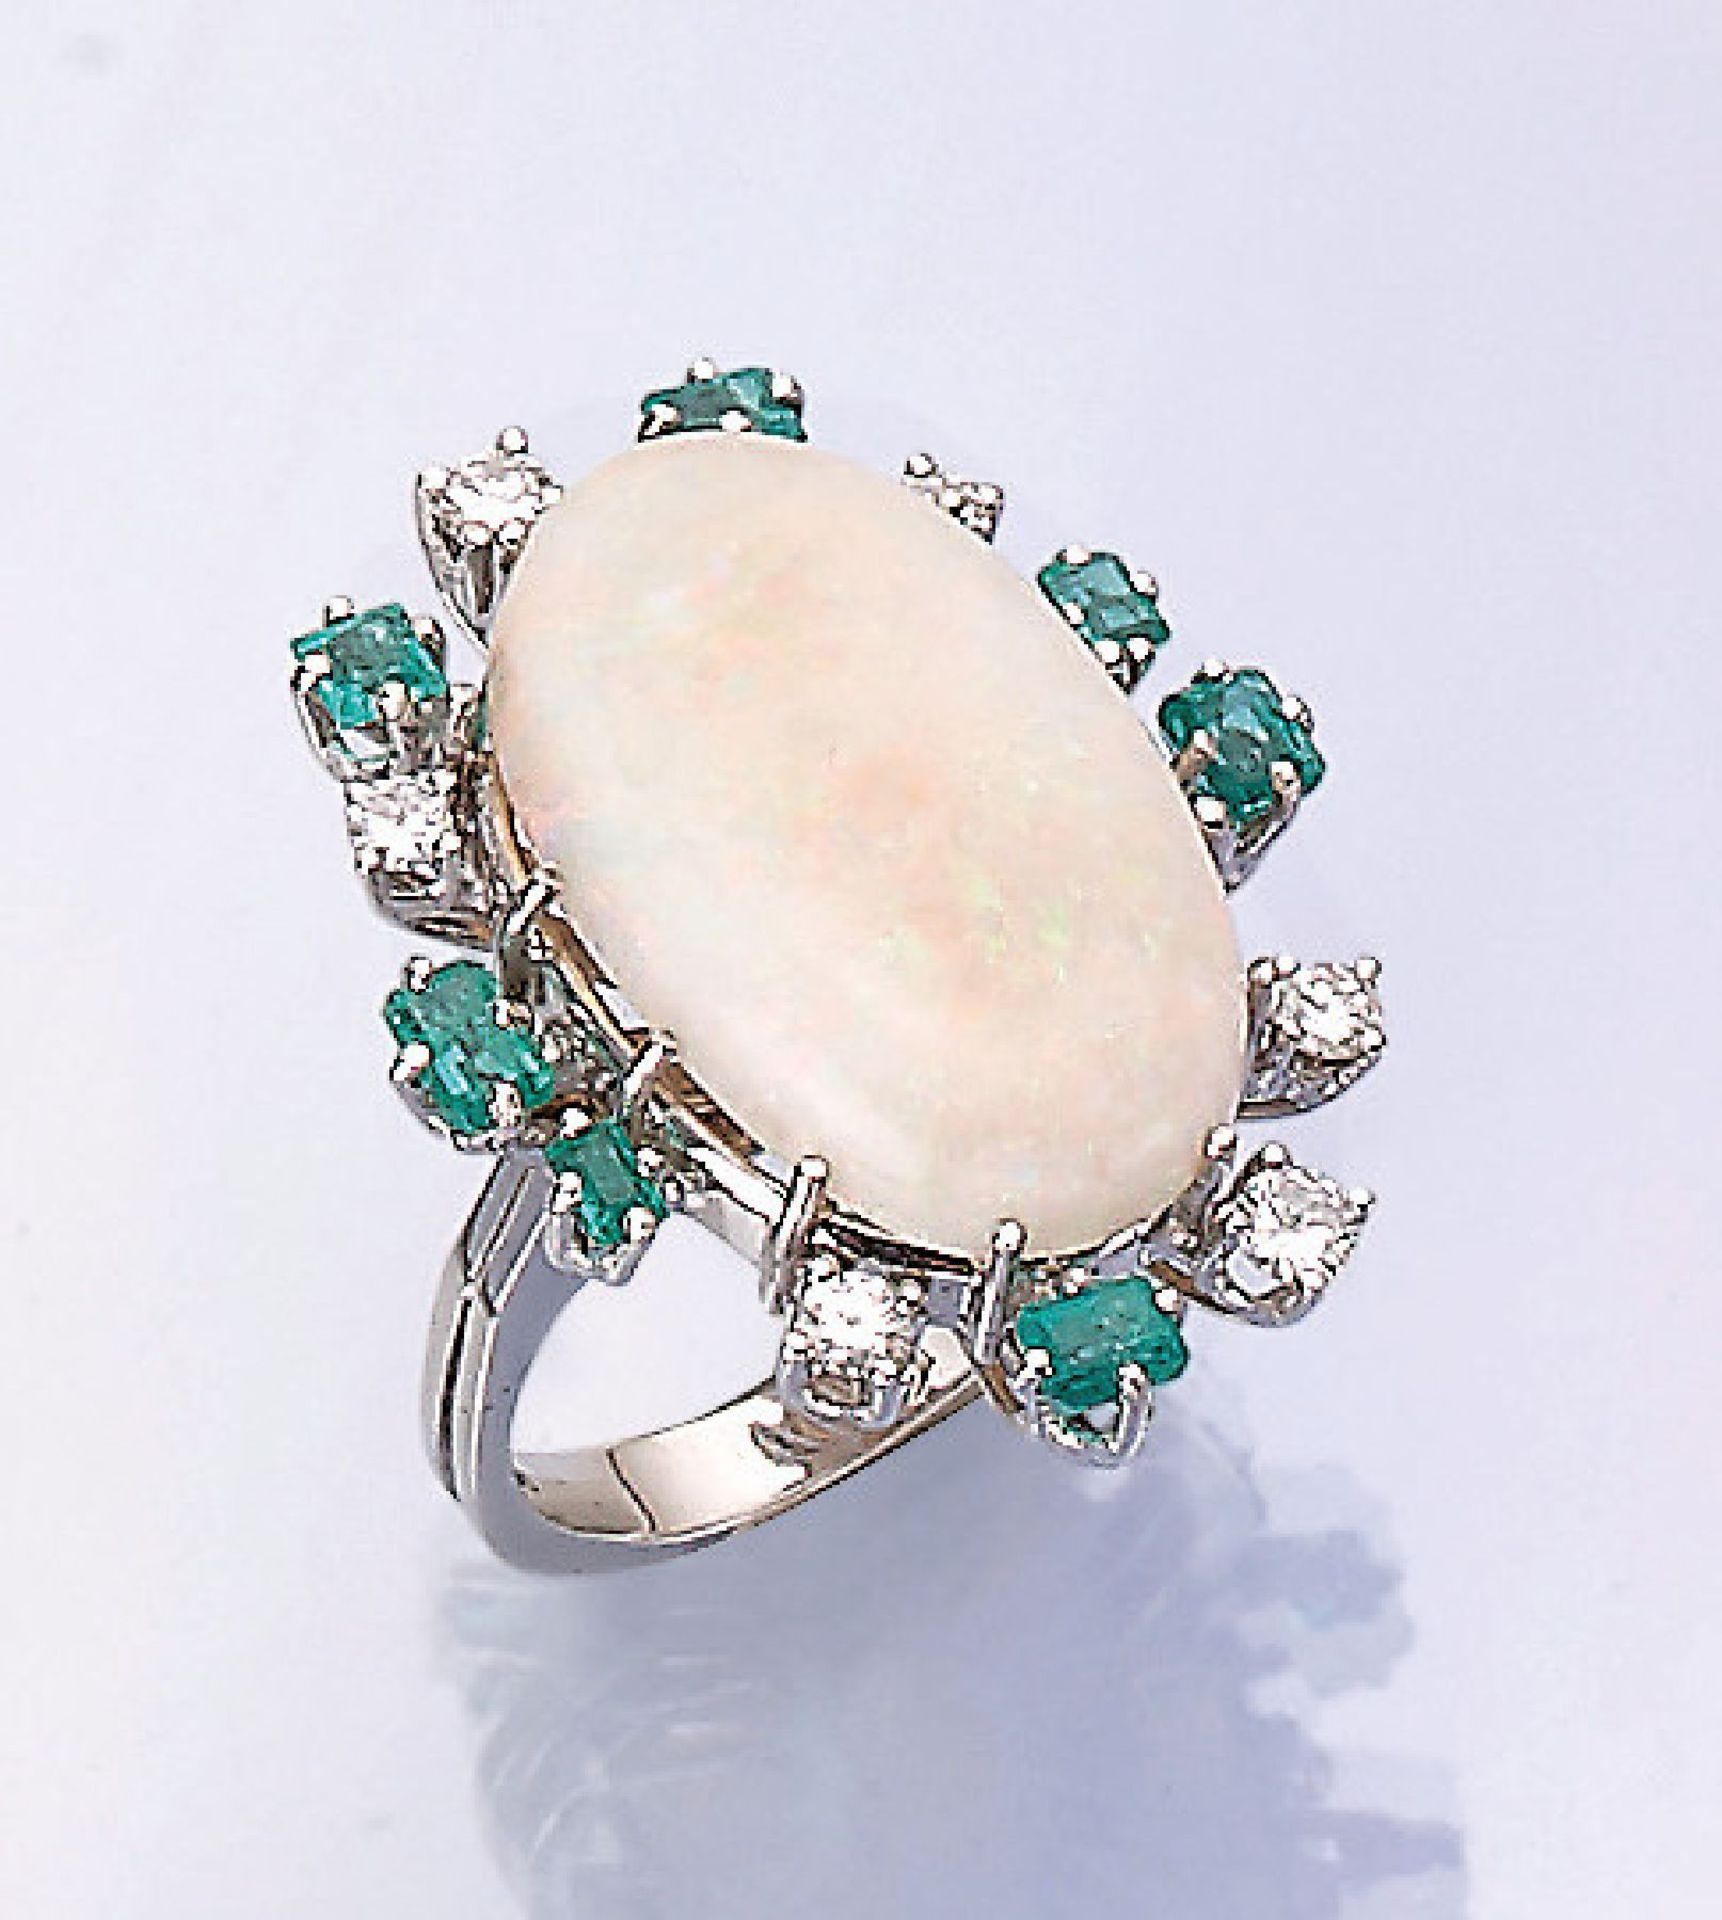 Los 31532 - 18 kt gold ring with opal, emeralds and brilliants , WG 750/000, oval opalcabochon approx. 6.50